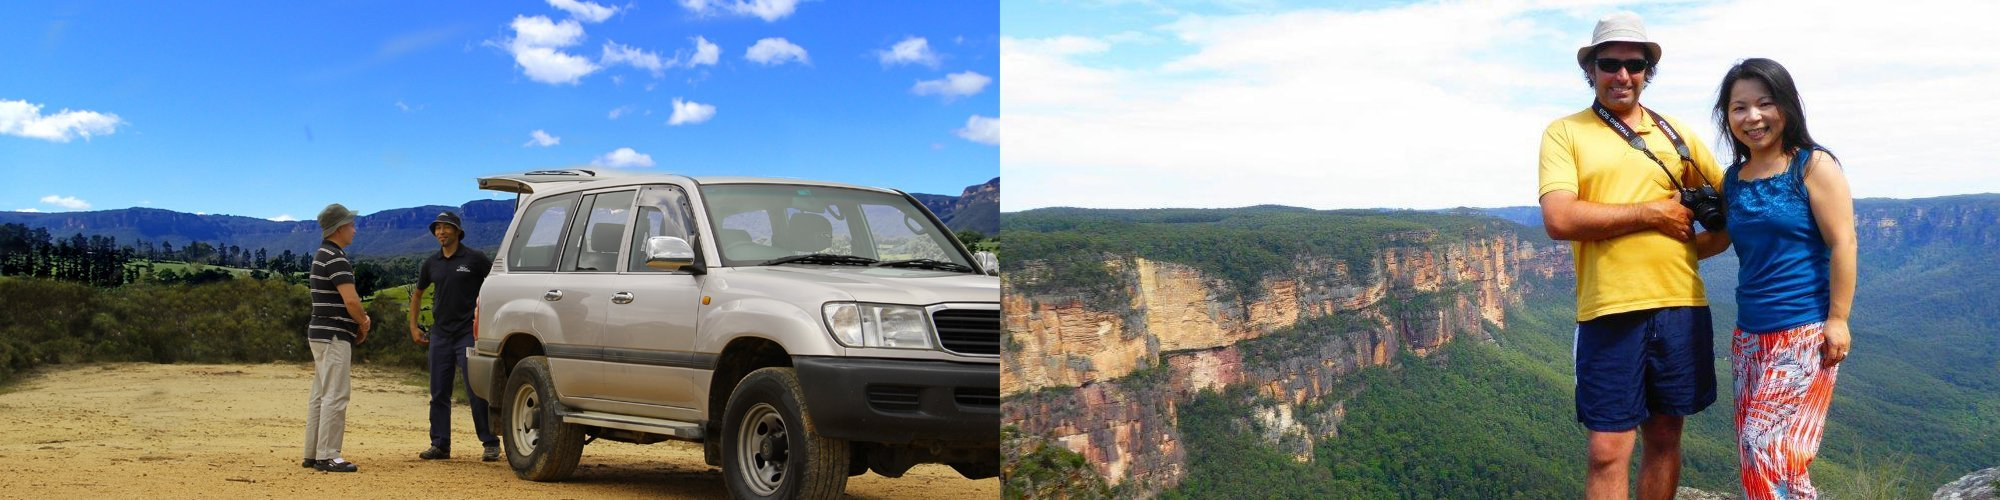 Best of the Blue Mountains tour by 4WD